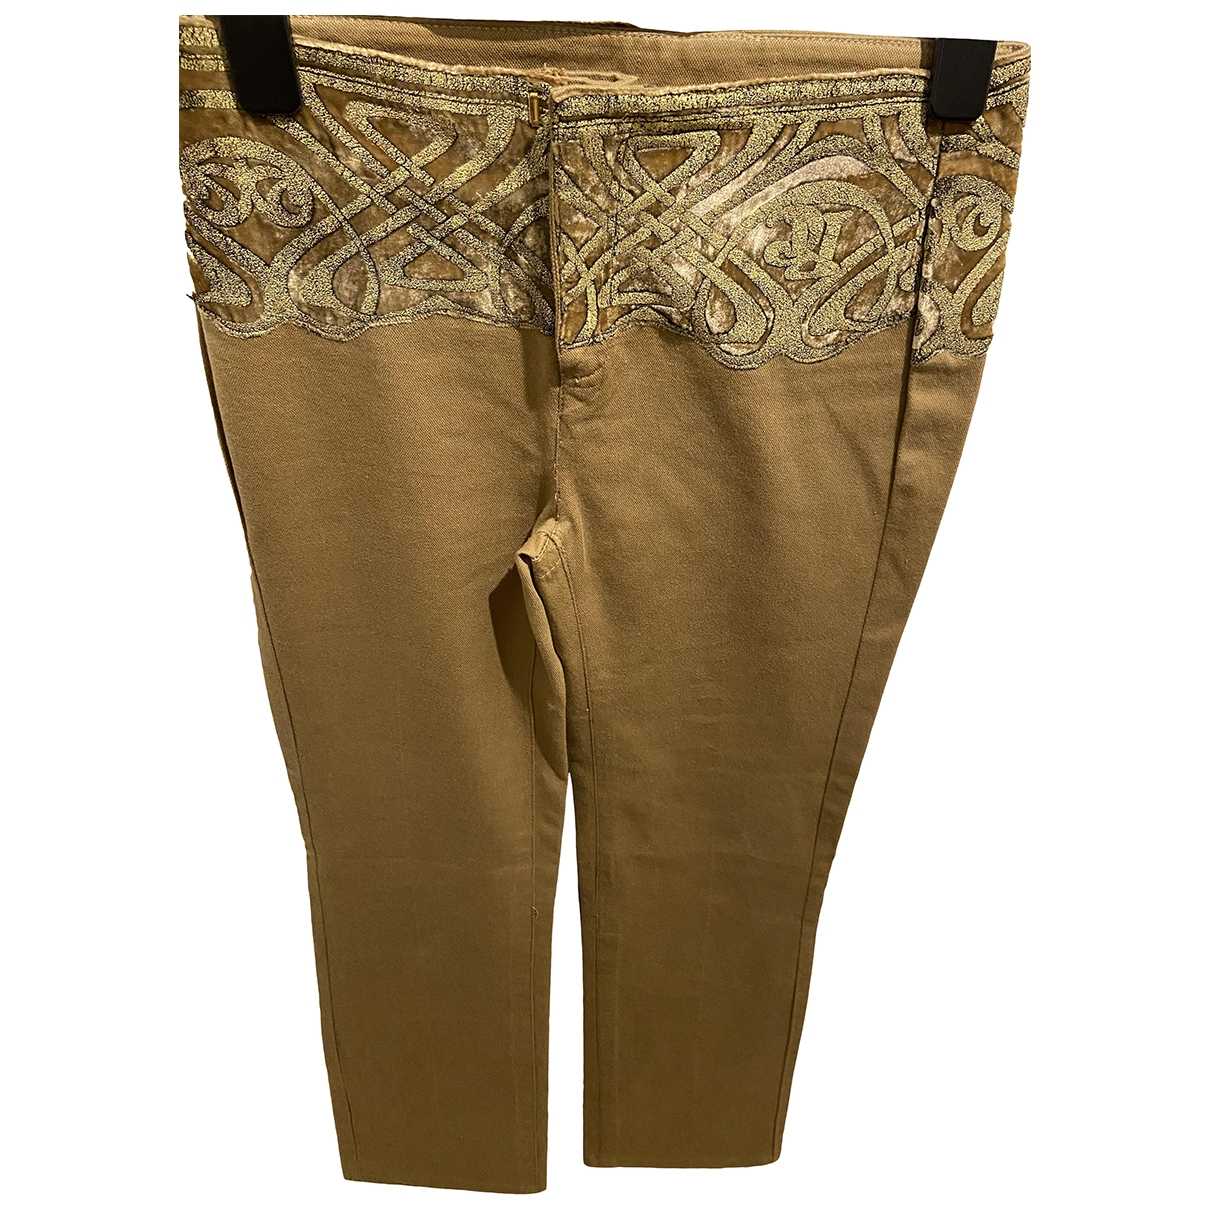 Roberto Cavalli \N Beige Cotton Trousers for Women 38 IT